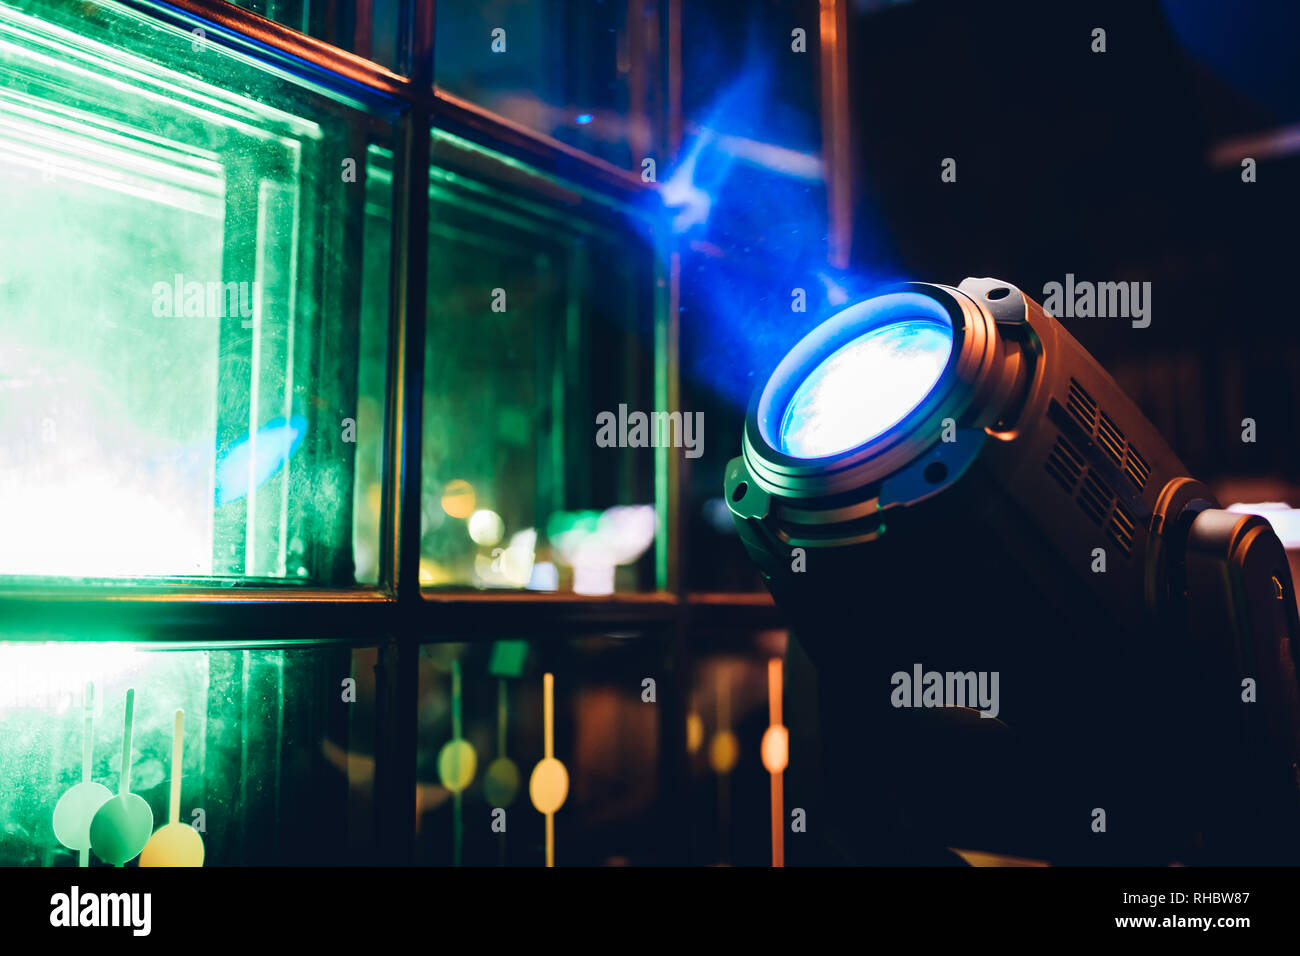 Stage lights or spot lights at the concert, disco, club or bar. Spotlight illuminate the area in the dark background. - Stock Image